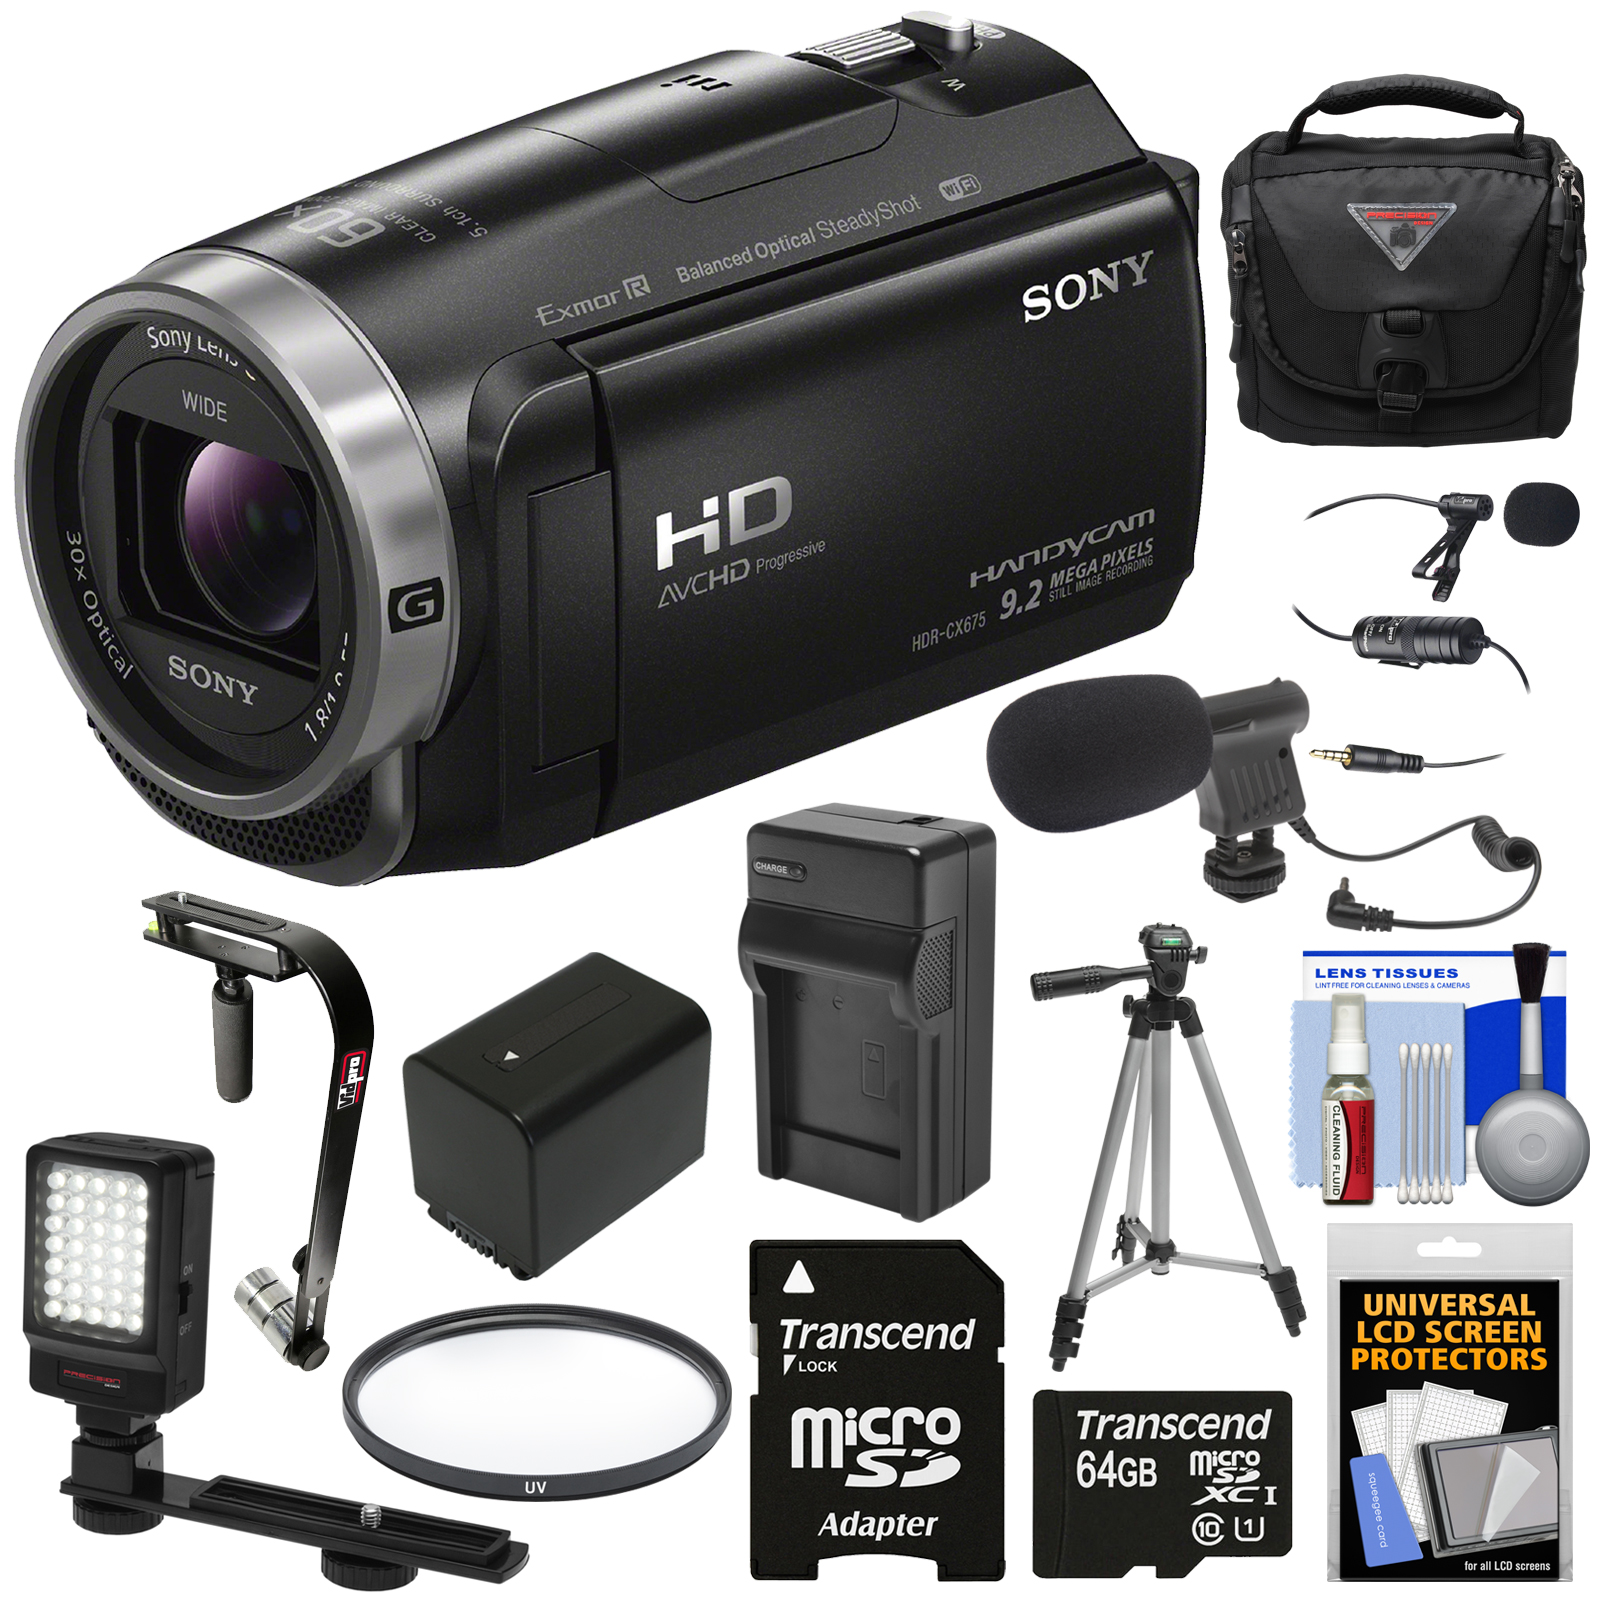 Sony Handycam HDR-CX675 32GB Wi-Fi HD Video Camera Camcor...